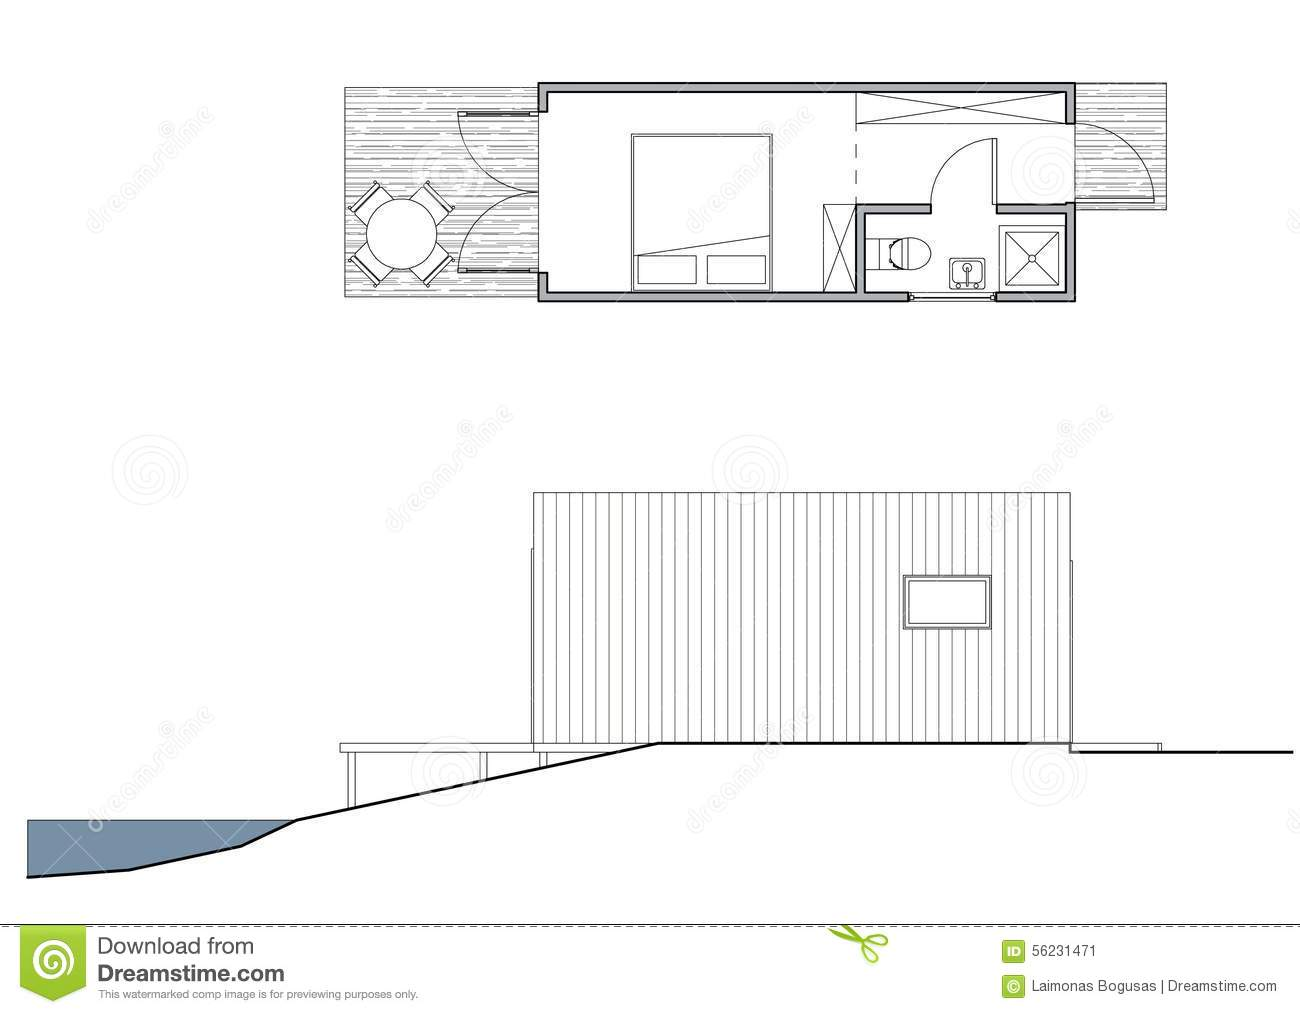 project of the small bungalow stock illustration image 56231471